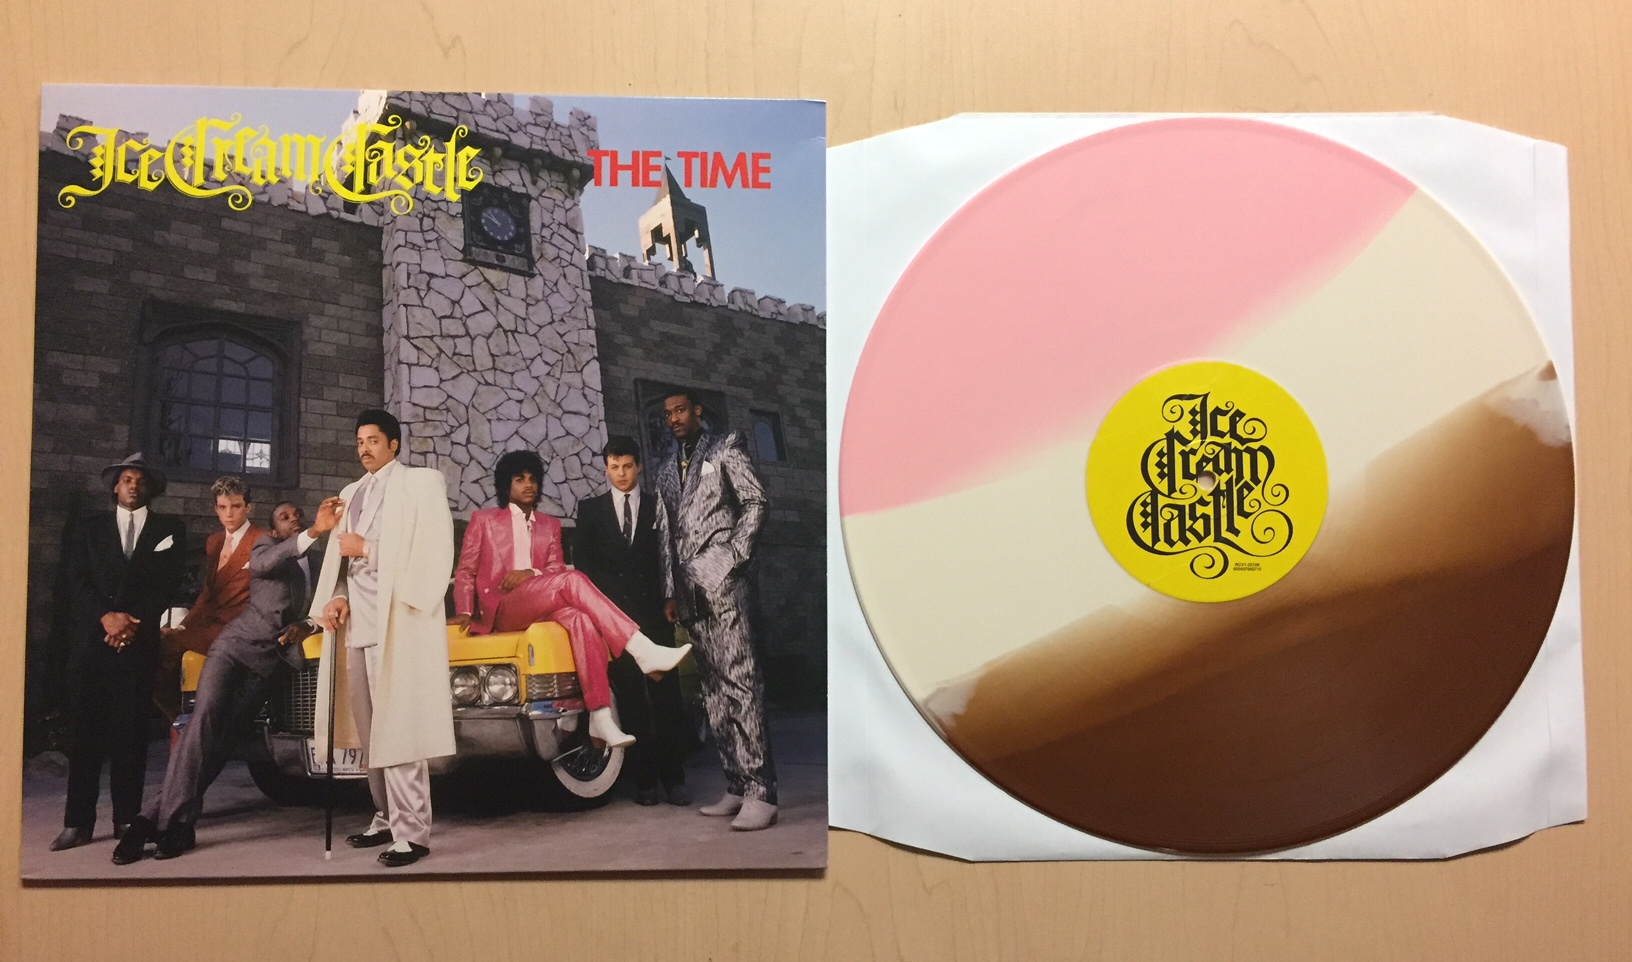 The Time - Ice Cream Castle vinyl reissue - Tues., July 24th